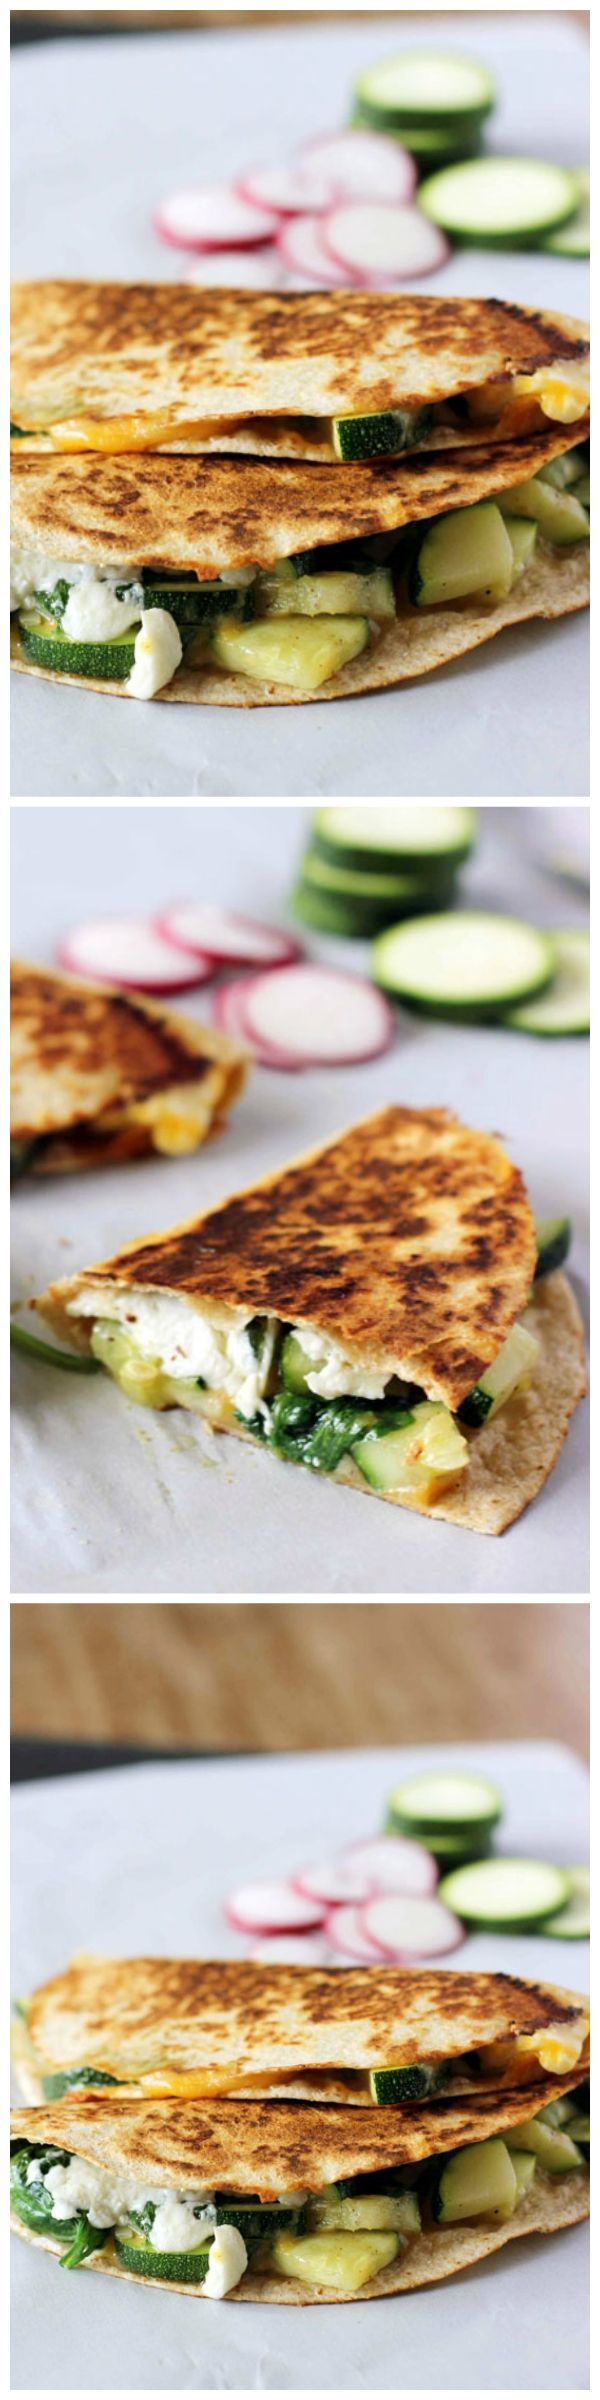 Zucchini and Spinach Quesadillas are a delicious, simple meal that can ...